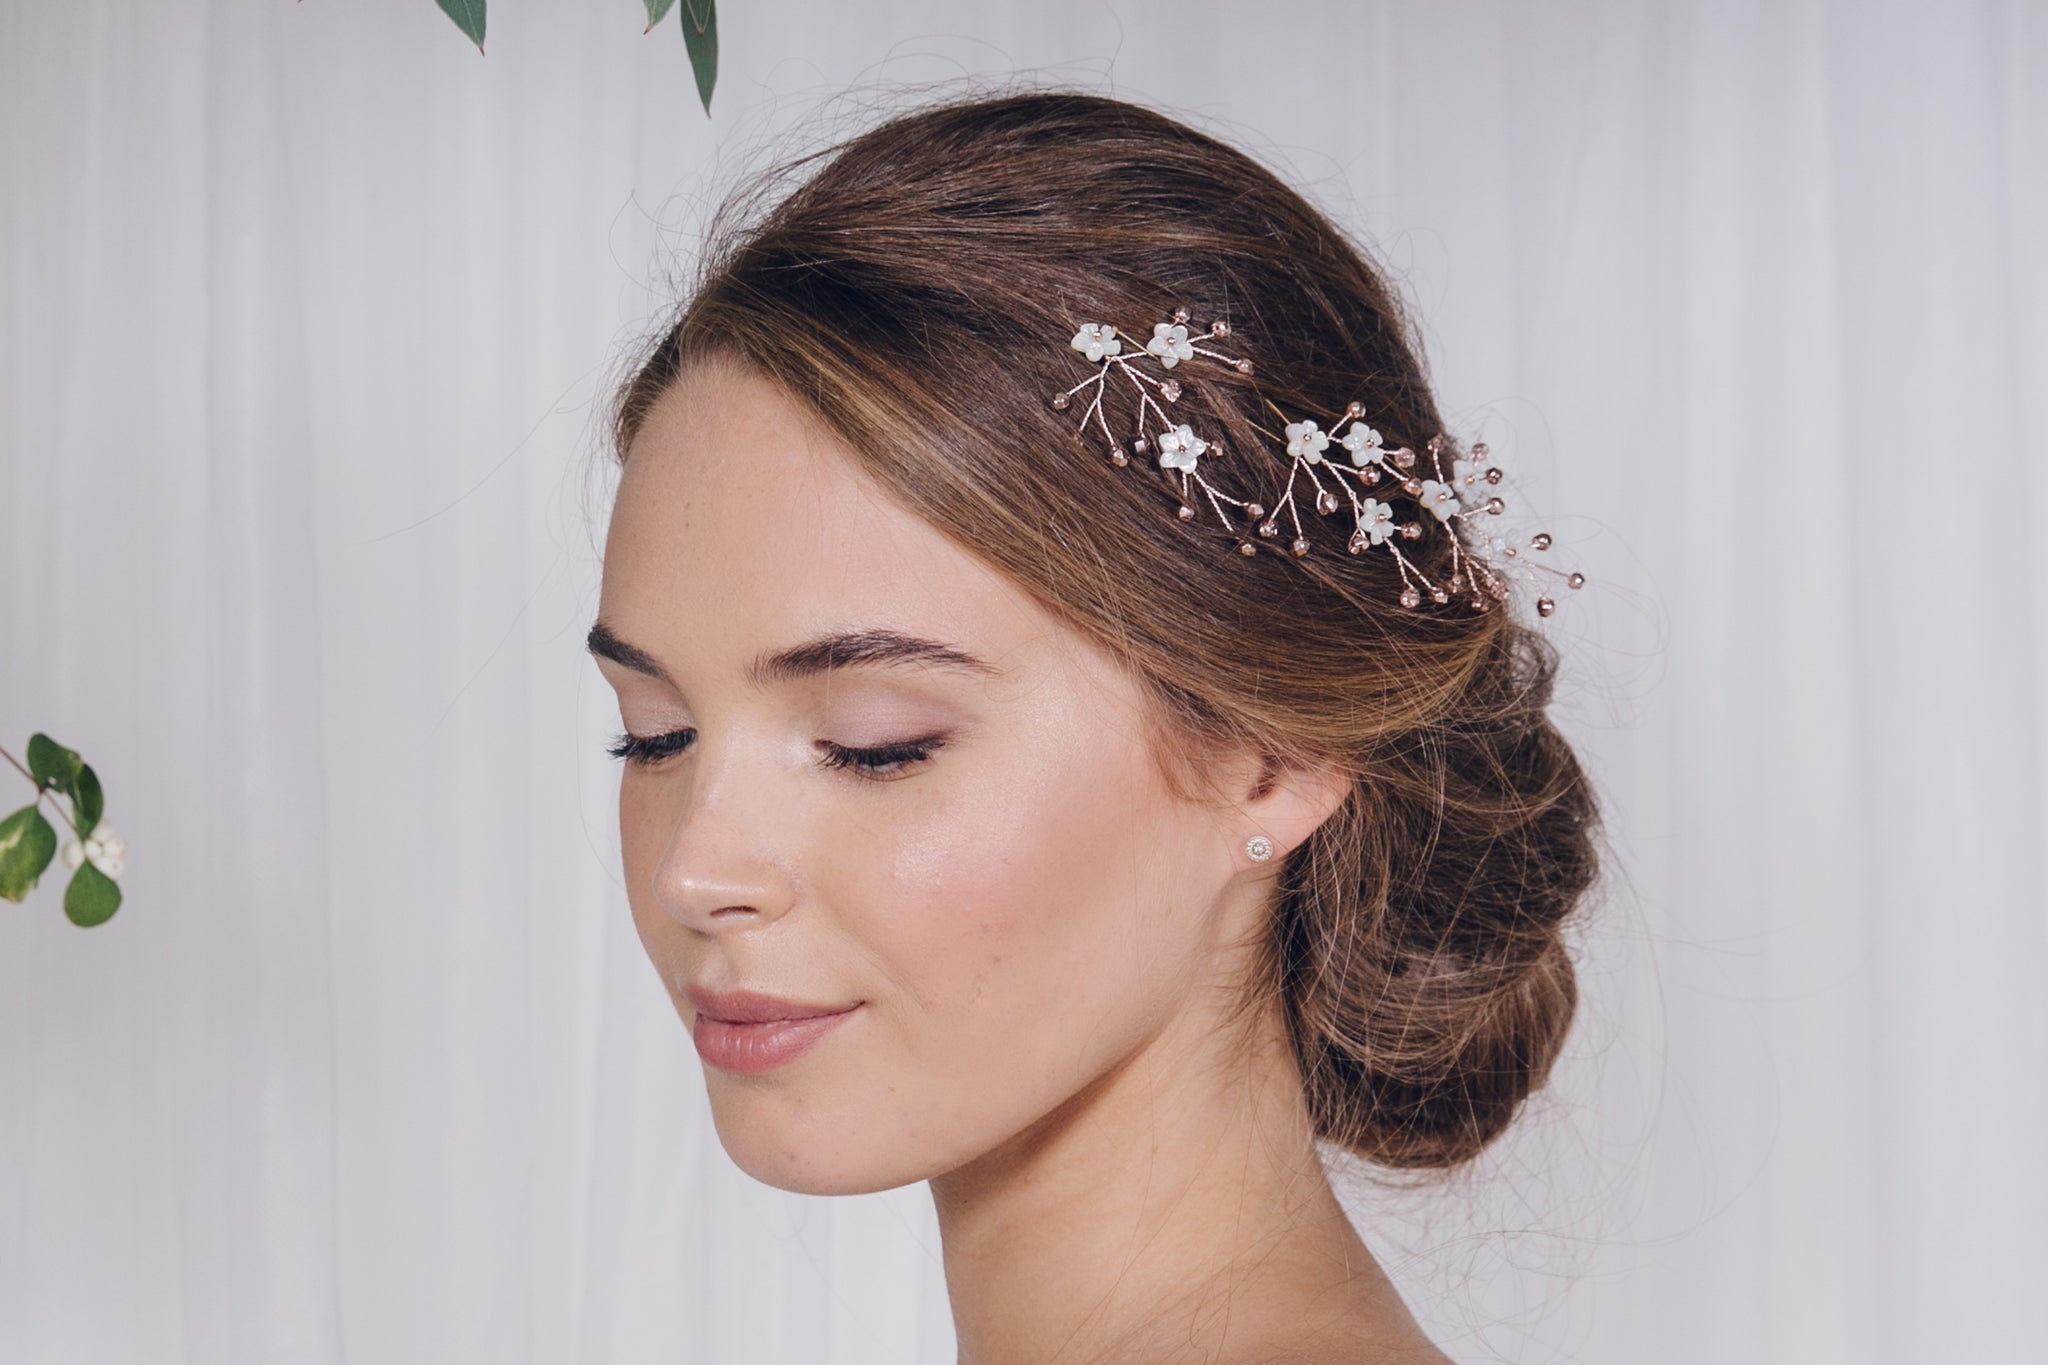 Set of three rose gold flower hairpins in the side of a bridal updo